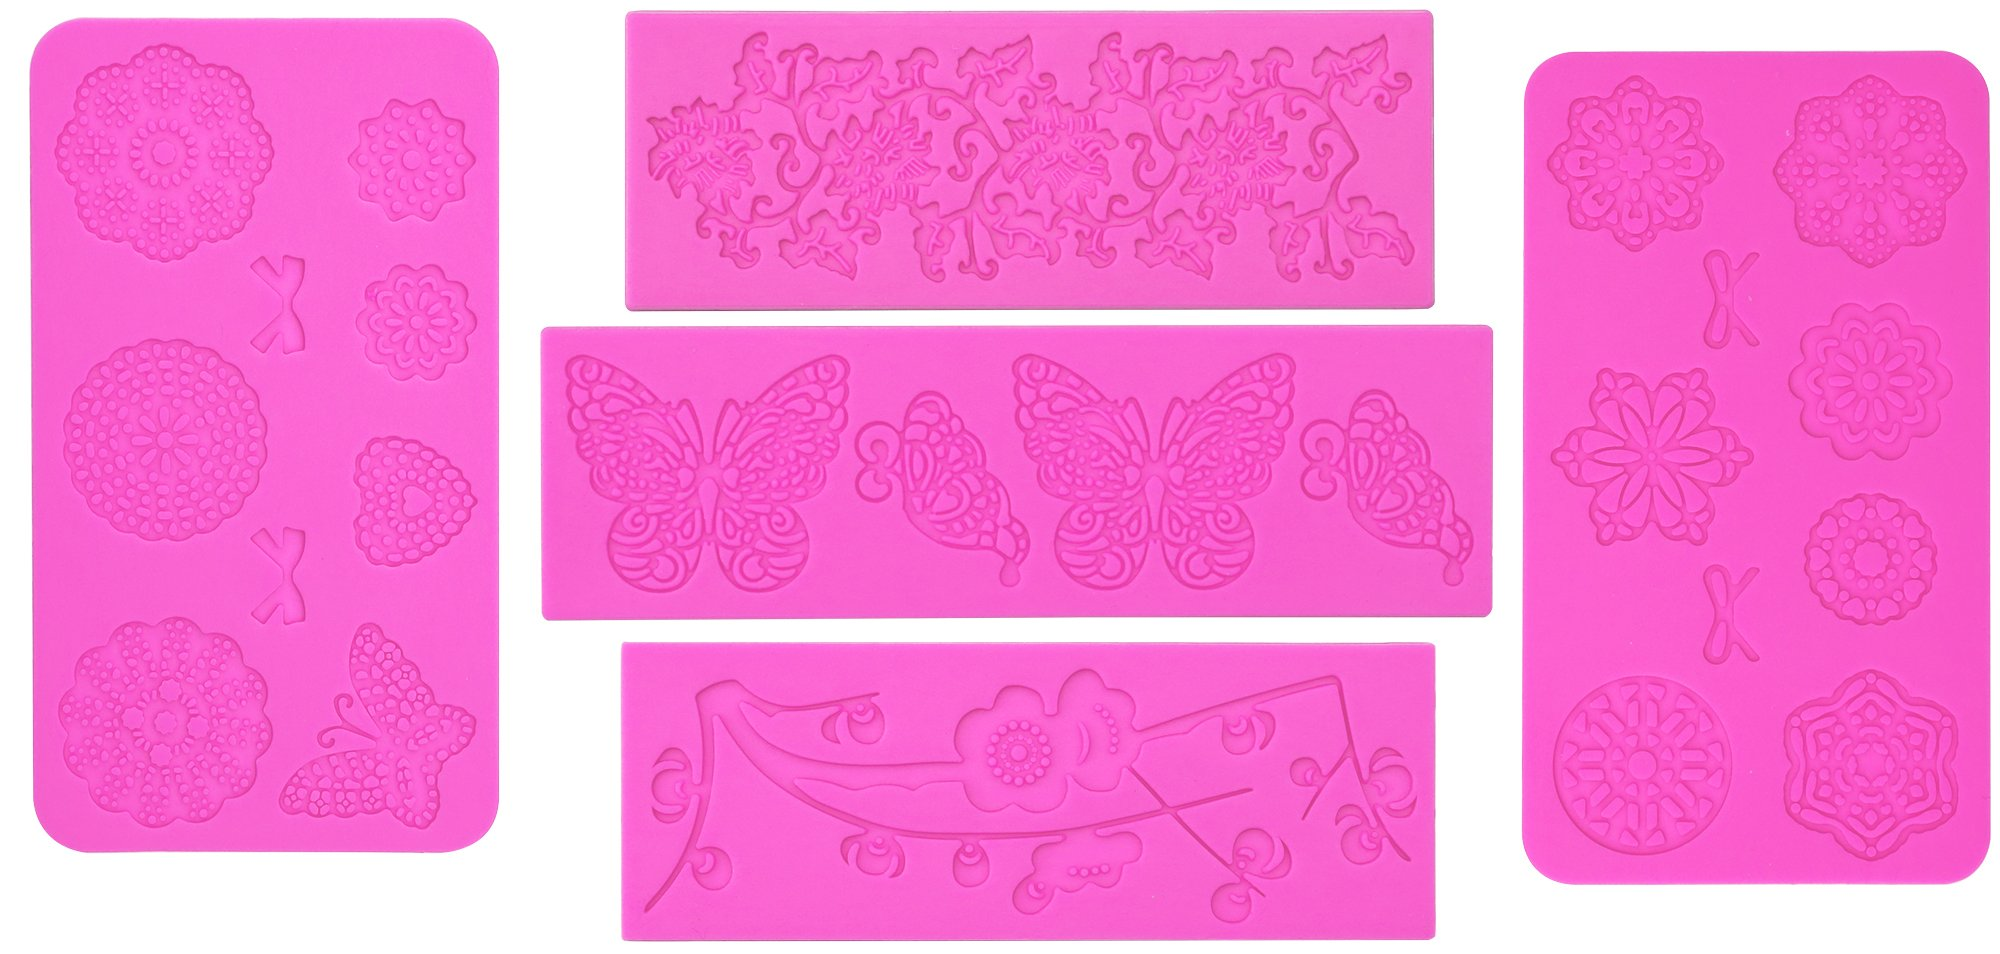 5pc Cake Decorating Molds- Premium Silicone Decoration Molds for Sugarcraft, Fondant, Gumpaste, Resin Mold , Lace Embossing Impression DIY Cake Fondant Decorating Mold -(set of 5)- Pink